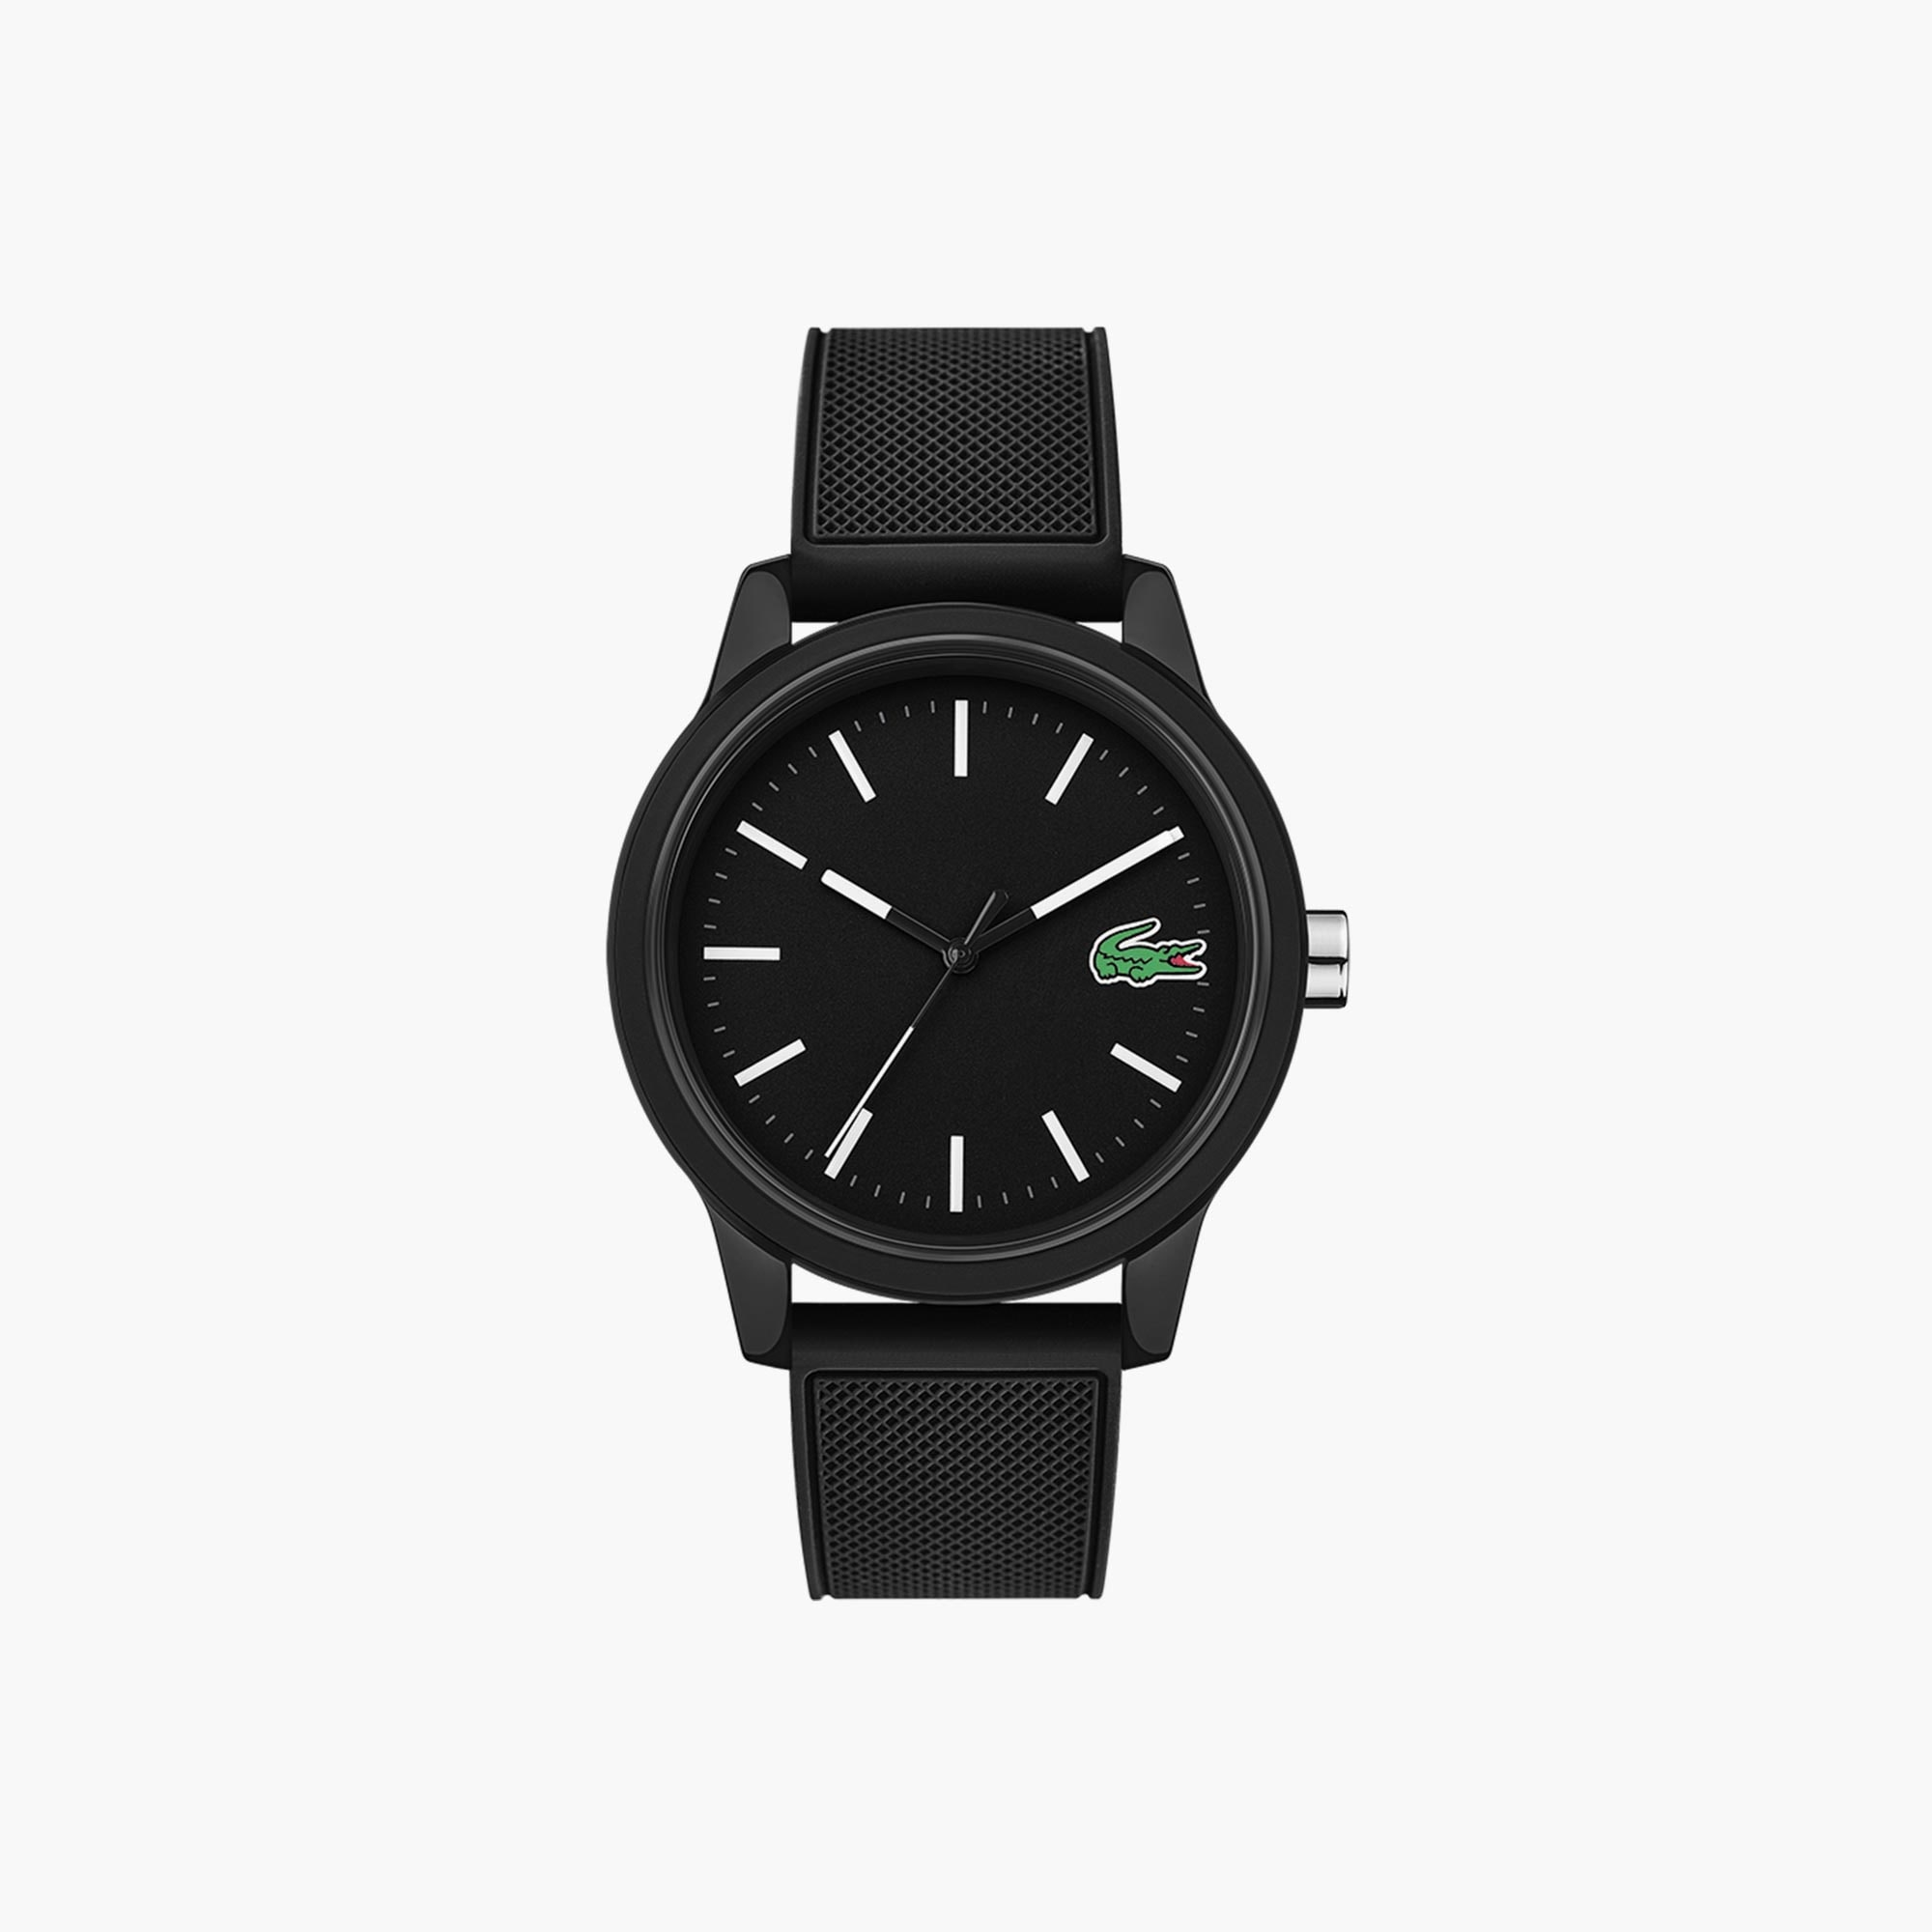 a2401d6819be9 Men s Lacoste 12.12 Watch with Black Silicone Strap